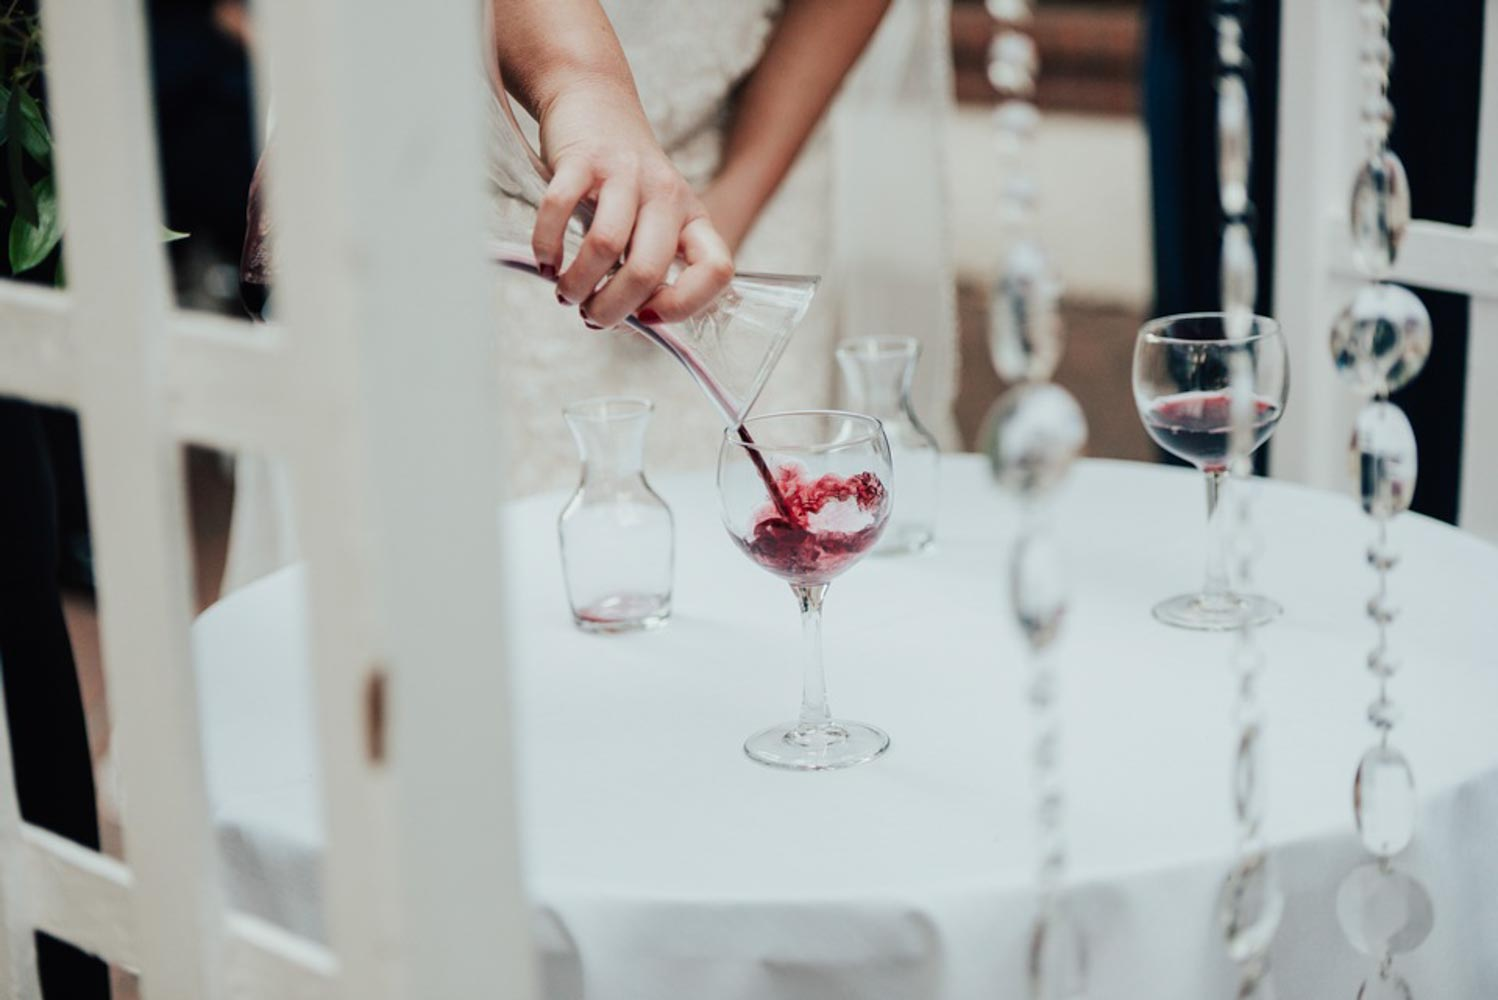 Groom pouring blended wine from the Marriage Carafe into a wine glass.